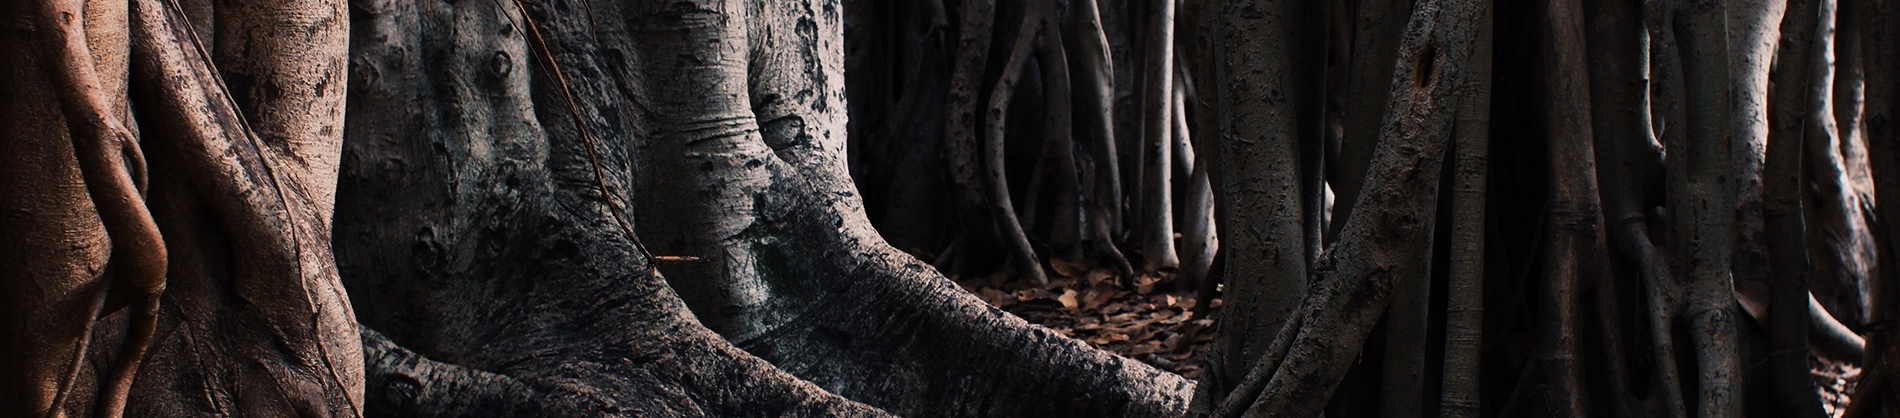 Large tree roots in a forest